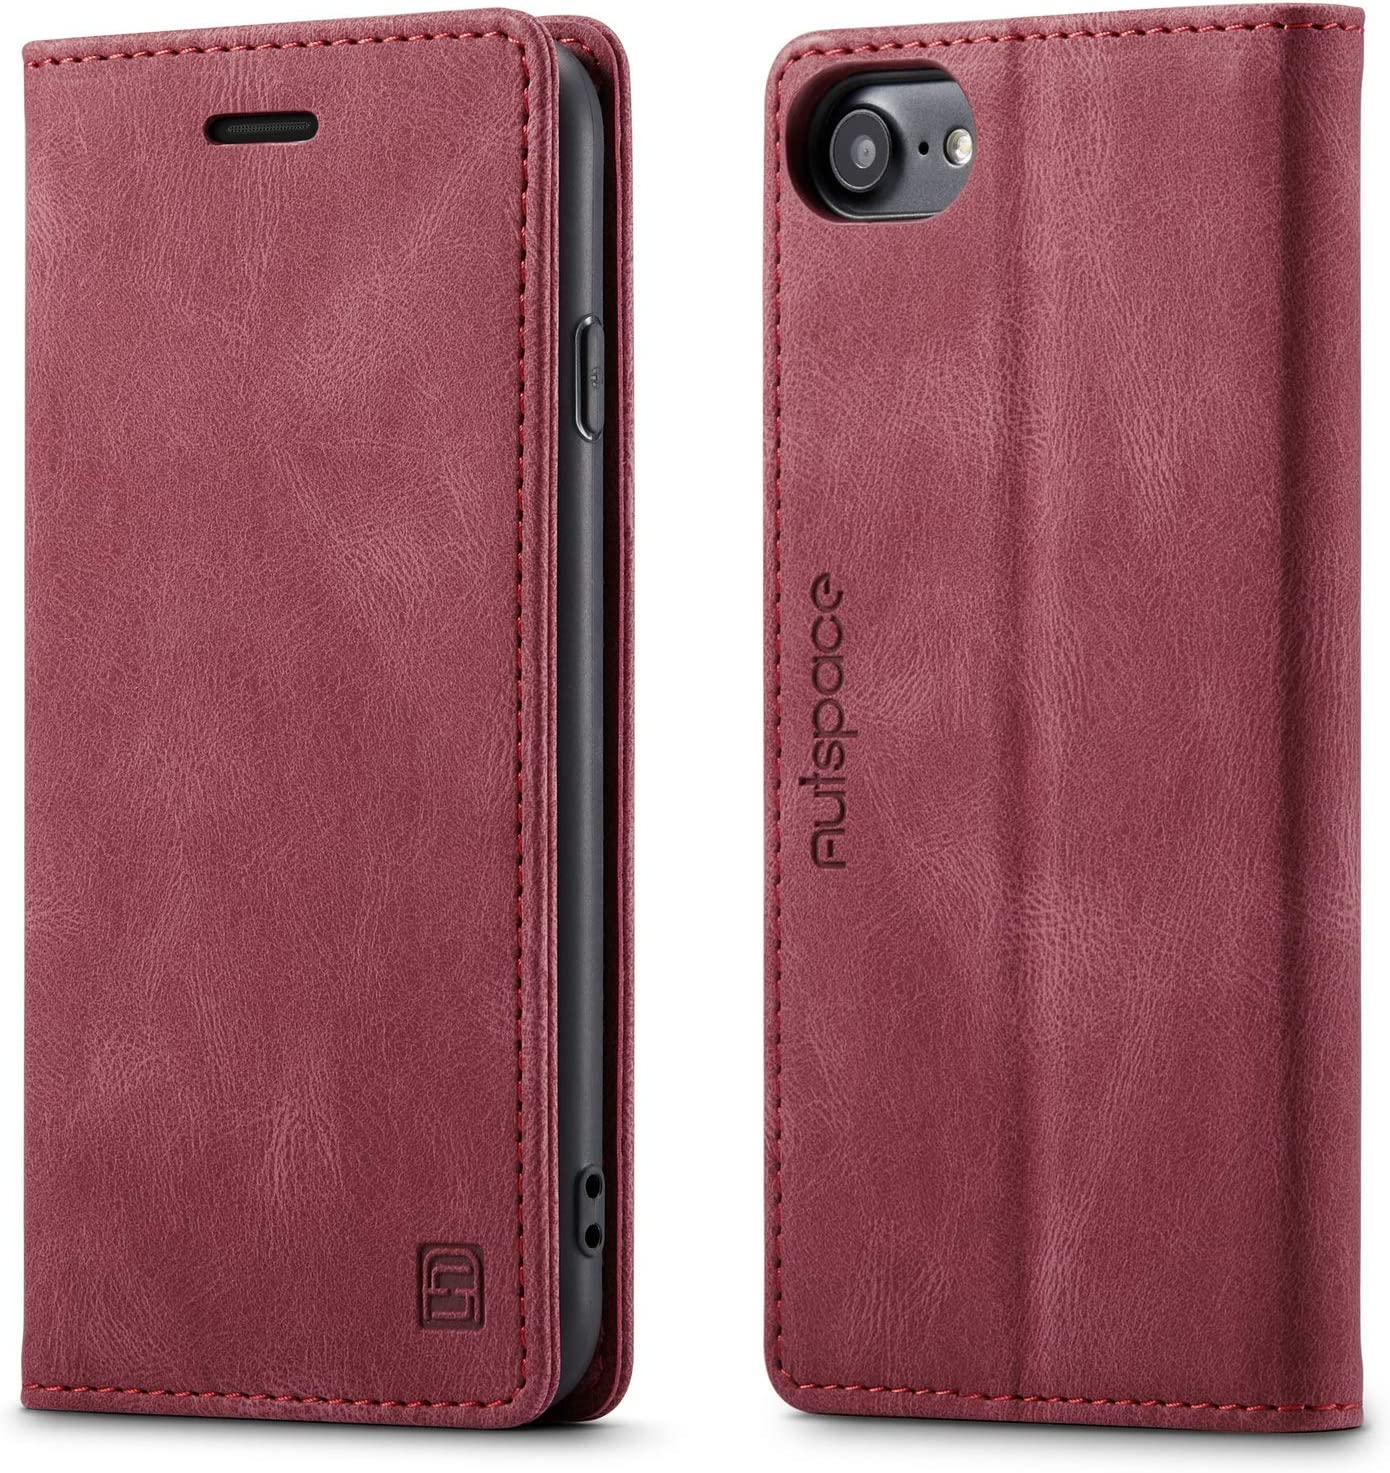 EYZUTAK Case for iPhone 6 iPhone 7 iPhone 8 iPhone SE 2020, Retro Matte Protective Leather Case with RFID Blocking Viewing Stand Magnetic Closure TPU Shell Flip Cover - Red